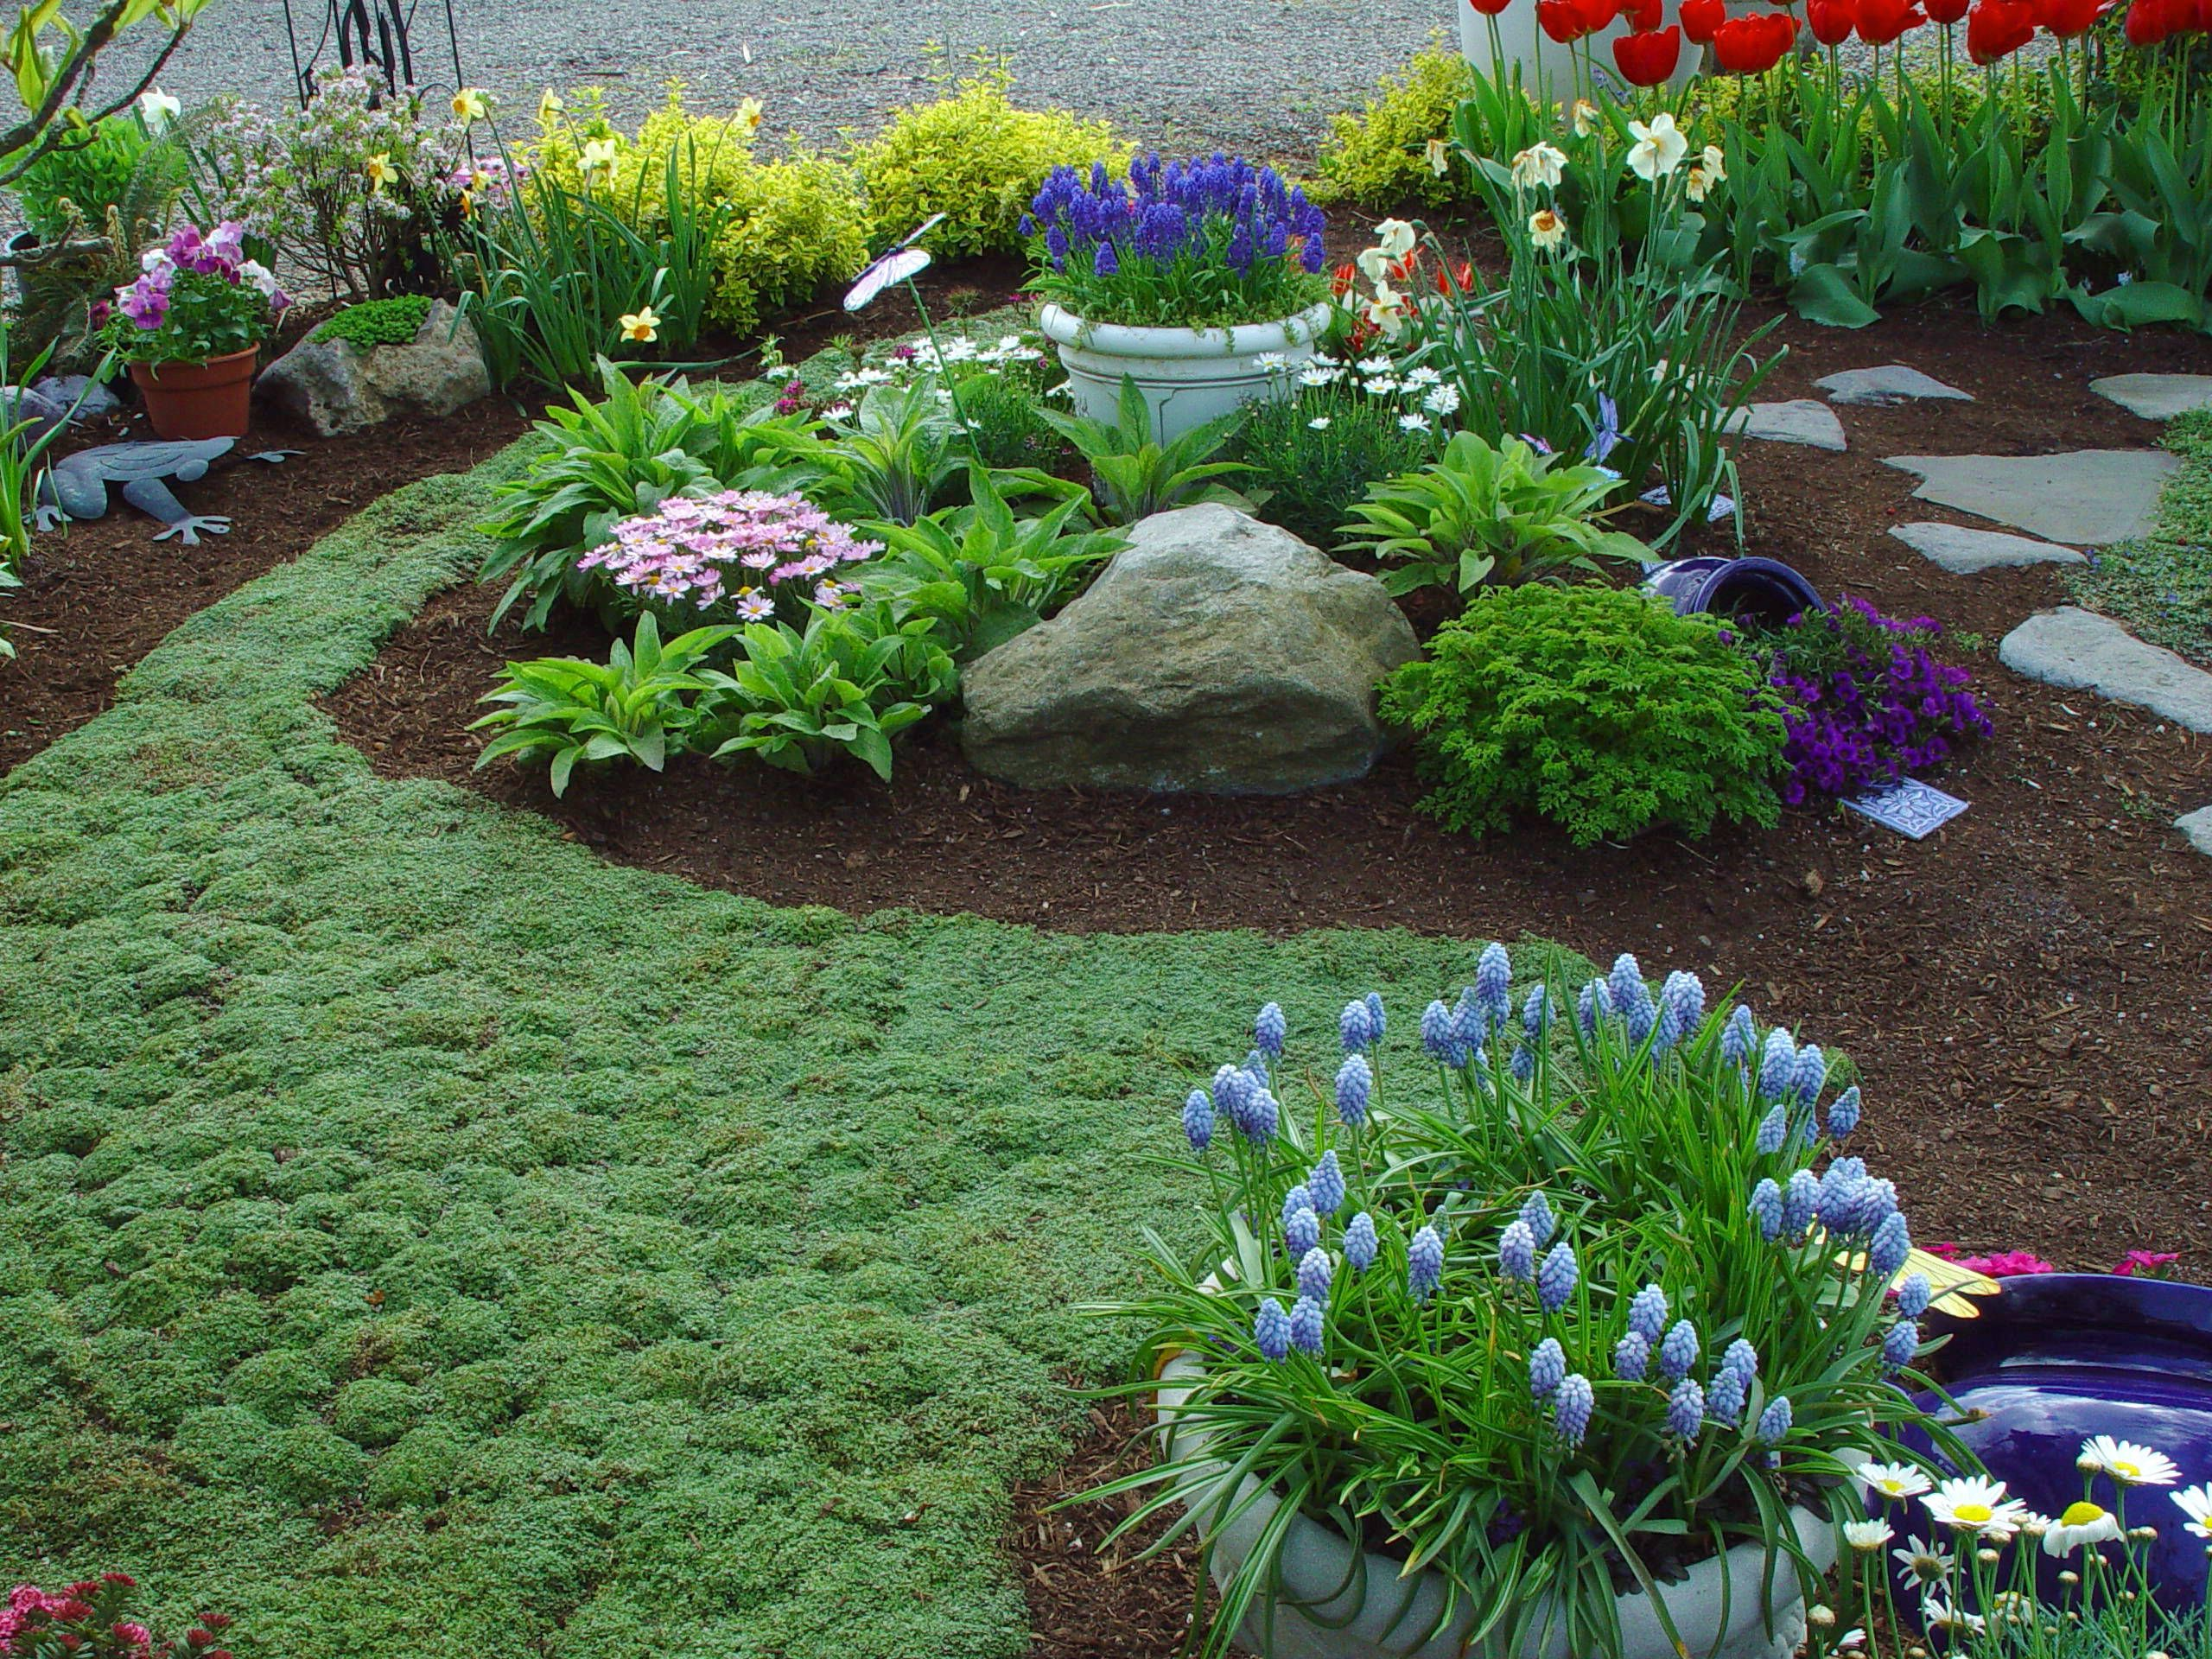 How to grow irish moss ground cover - Sprawling And Spilling Plants For Paved Areas